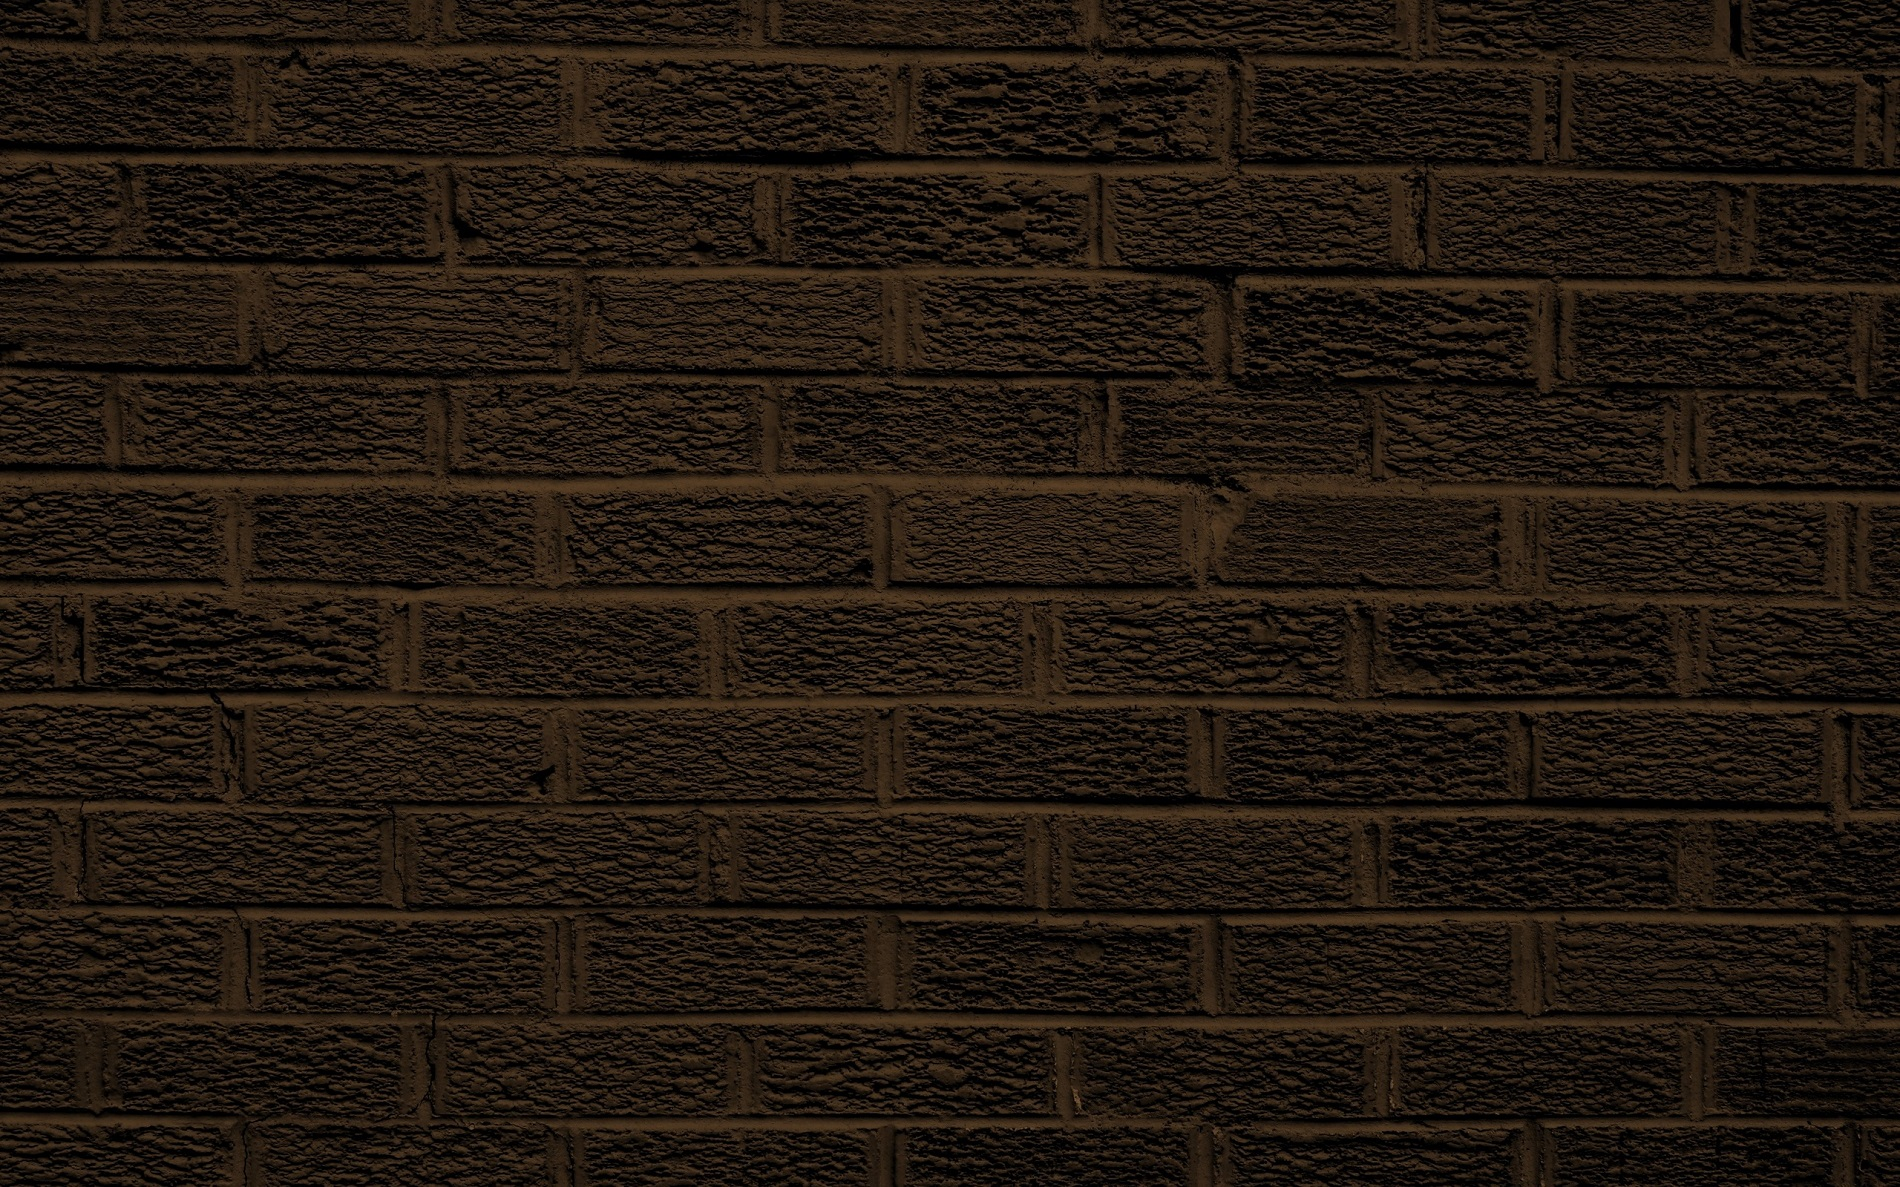 Brick Wallpaper 30